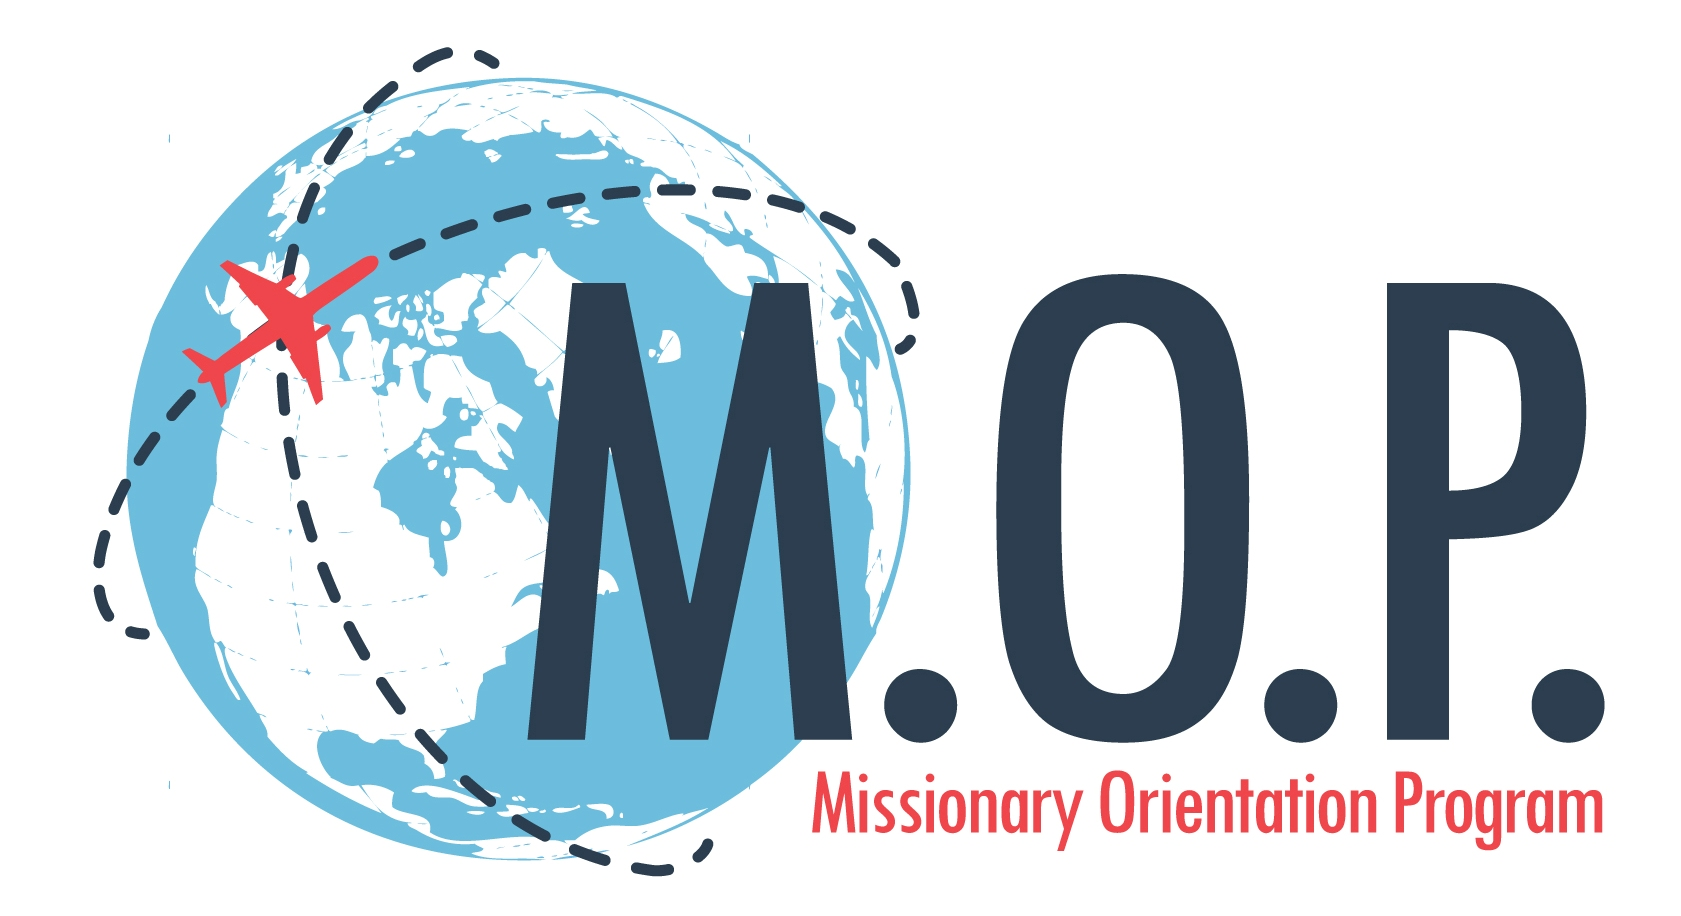 New Hope Missionary Baptist Church logo design contest - Logo123.com